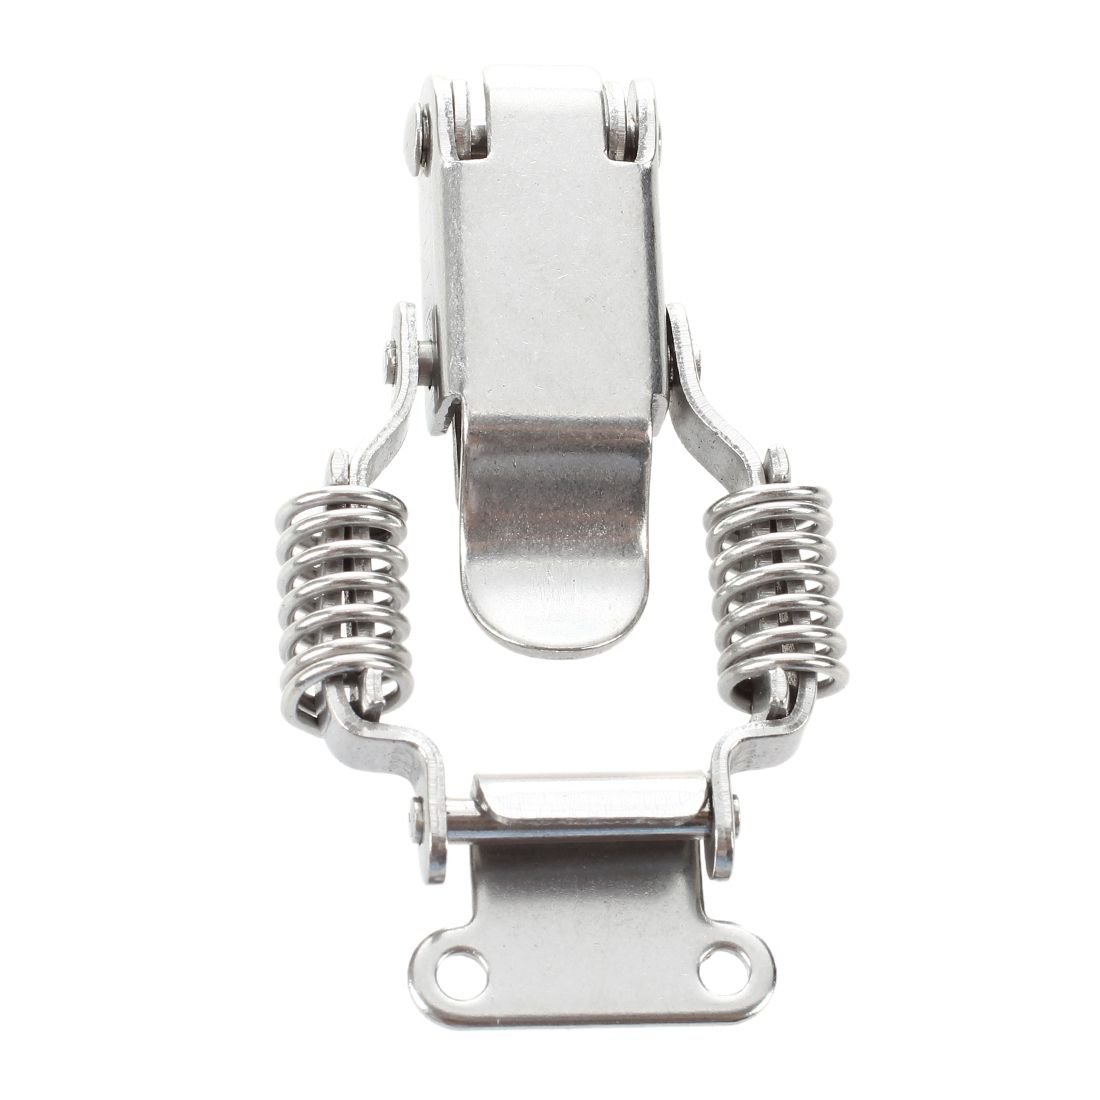 SODIAL Schrank 6,1 cm Laenge Metall Draw Spring Latch Hardware Silber R